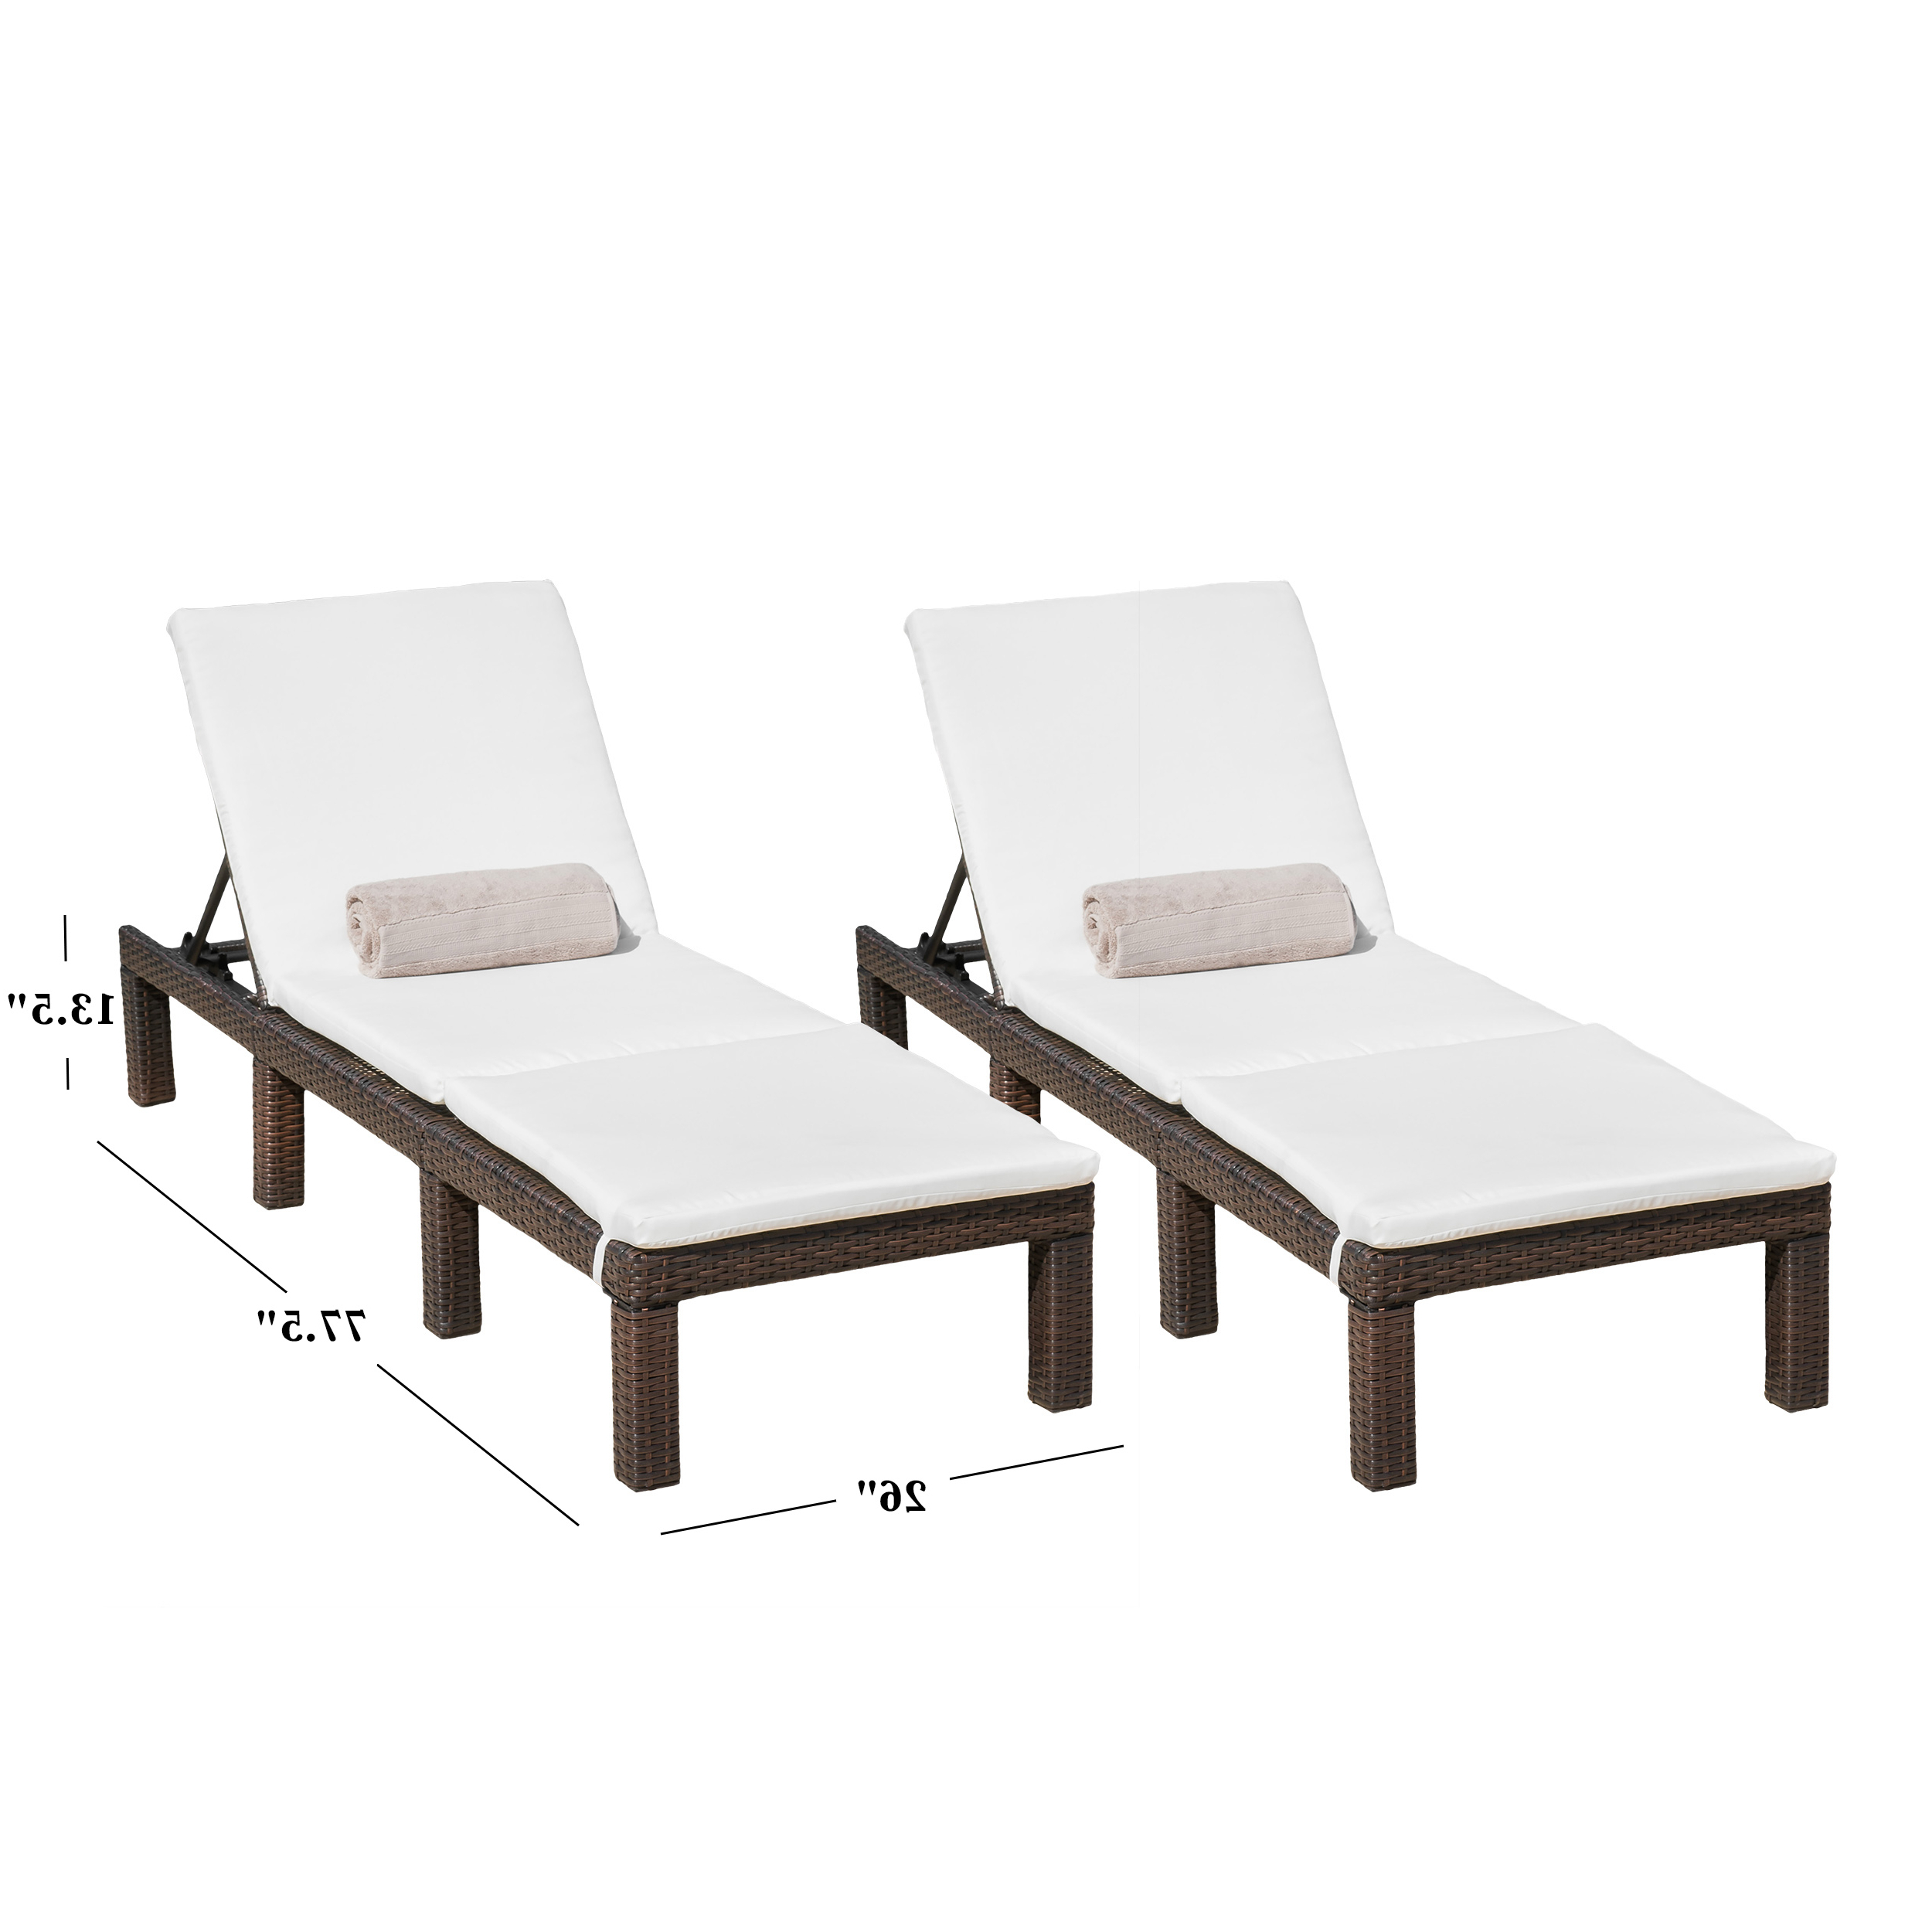 Aspen Outdoor Wicker Adjustable Chaise Lounges With Cushions (Set Of 2) With Regard To Well Known White Wicker Adjustable Chaise Loungers With Cushions (View 2 of 25)